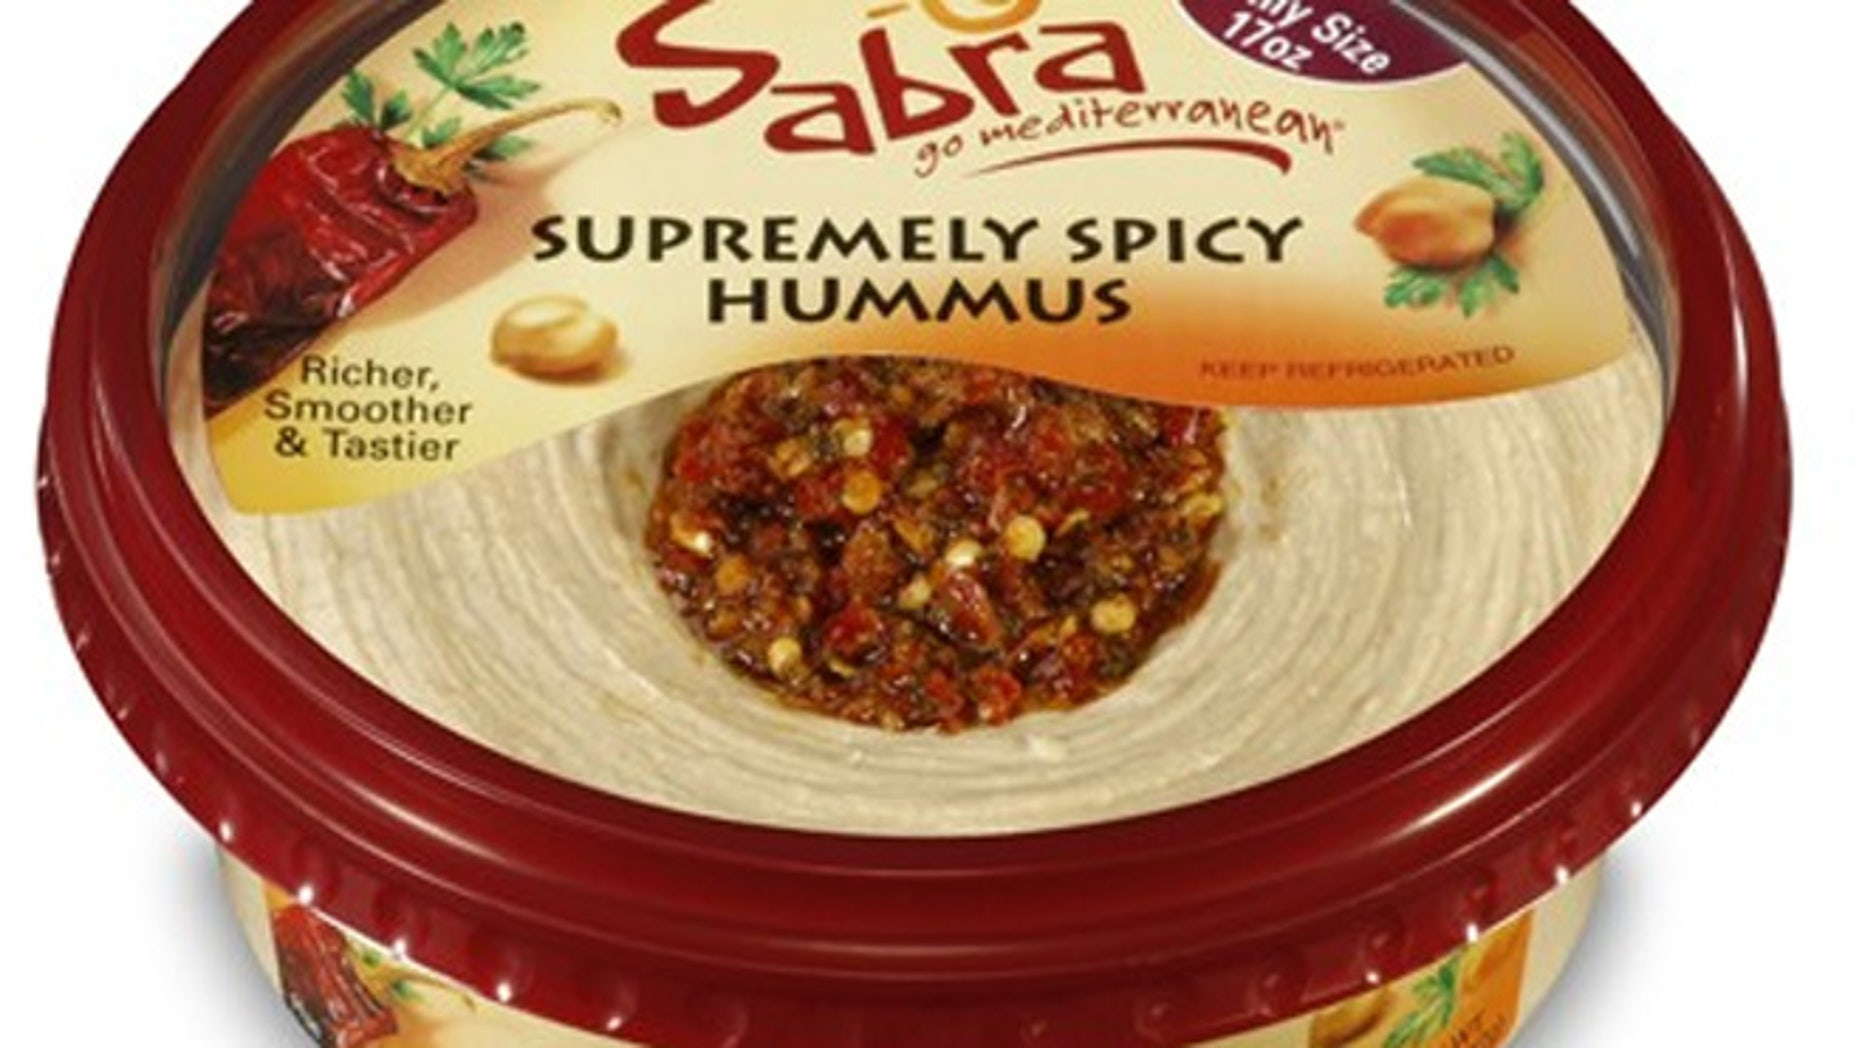 Sabra Hummus is seeking federal standards on what goes into hummus.